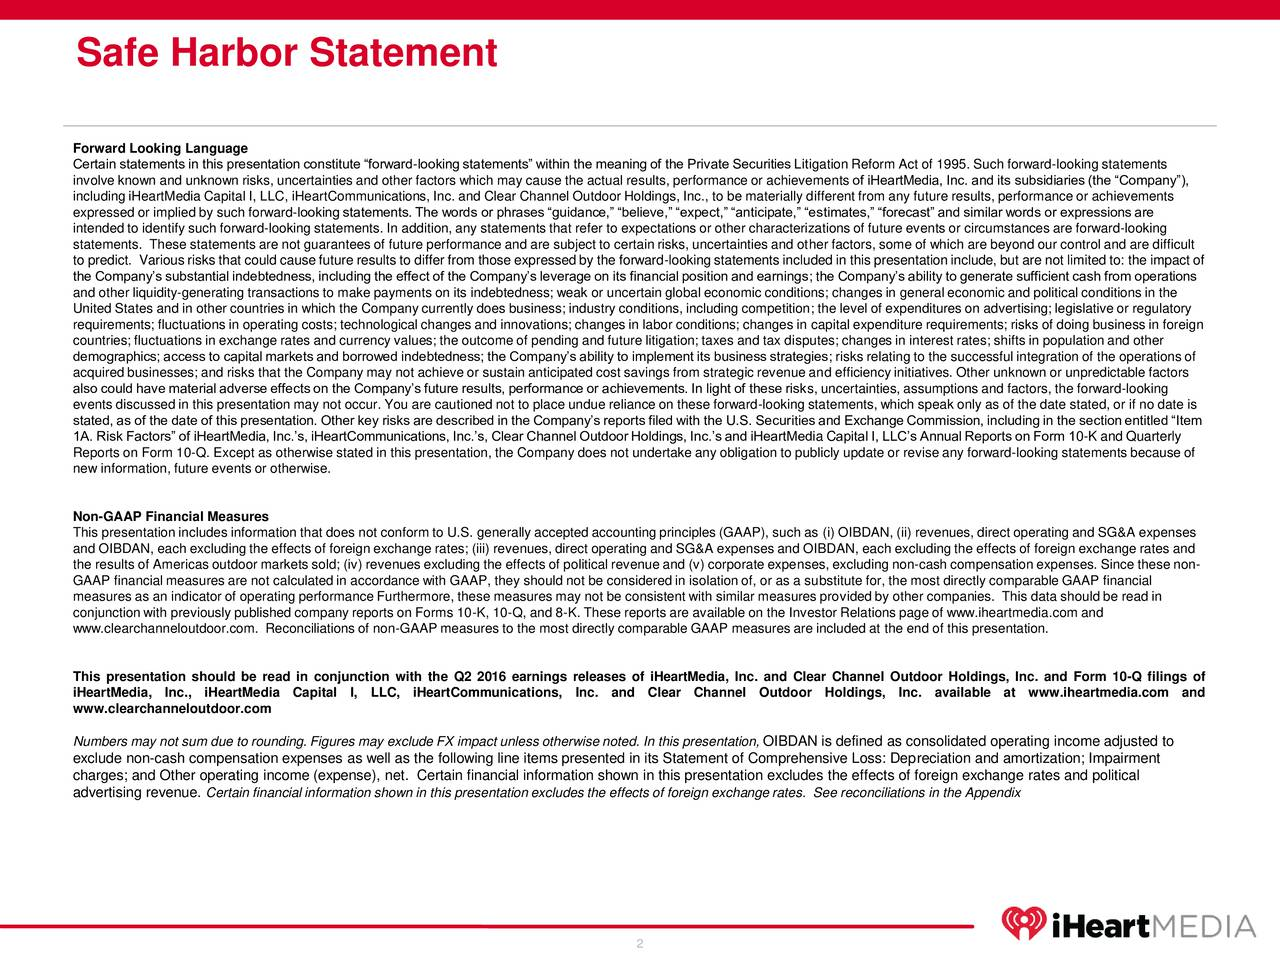 Forward Looking Language Certain statements in this presentation constitute forward-looking statements within the meaning of the Private Securities Litigation Reform Act of 1995. Such forward-looking statements involve known and unknown risks, uncertainties and other factors which may cause the actual results, performance or achievements of iHeartMedia, Inc. and its subsidiaries (the Company), including iHeartMedia Capital I, LLC, iHeartCommunications, Inc. and Clear Channel Outdoor Holdings, Inc., to be materially different from any future results, performance or achievements expressed or implied by such forward-looking statements. The words or phrases guidance, believe, expect, anticipate, estimates, forecast and similar words or expressions are intended to identify such forward-looking statements. In addition, any statements that refer to expectations or other characterizations of future events or circumstances are forward-looking statements. These statements are not guarantees of future performance and are subject to certain risks, uncertainties and other factors, some of which are beyond our control and are difficult to predict. Various risks that could cause future results to differ from those expressed by the forward-looking statements included in this presentation include, but are not limited to: the impact of the Companys substantial indebtedness, including the effect of the Companys leverage on its financial position and earnings; the Companys ability to generate sufficient cash from operations and other liquidity-generating transactions to make payments on its indebtedness; weak or uncertain global economic conditions; changes in general economic and political conditions in the United States and in other countries in which the Company currently does business; industry conditions, including competition; the level of expenditures on advertising; legislative or regulatory requirements; fluctuations in operating costs; technological changes and innovations; changes in labor conditions; changes in capital expenditure requirements; risks of doing business in foreign countries; fluctuations in exchange rates and currency values; the outcome of pending and future litigation; taxes and tax disputes; changes in interest rates; shifts in population and other demographics; access to capital markets and borrowed indebtedness; the Companys ability to implement its business strategies; risks relating to the successful integration of the operations of acquired businesses; and risks that the Company may not achieve or sustain anticipated cost savings from strategic revenue and efficiency initiatives. Other unknown or unpredictable factors also could have material adverse effects on the Companys future results, performance or achievements. In light of these risks, uncertainties, assumptions and factors, the forward-looking events discussed in this presentation may not occur. You are cautioned not to place undue reliance on these forward-looking statements, which speak only as of the date stated, or if no date is stated, as of the date of this presentation. Other key risks are described in the Companys reports filed with the U.S. Securities and Exchange Commission, including in the section entitled Item 1A. Risk Factors of iHeartMedia, Inc.s, iHeartCommunications, Inc.s, Clear Channel Outdoor Holdings, Inc.s and iHeartMedia Capital I, LLCs Annual Reports on Form 10-K and Quarterly Reports on Form 10-Q. Except as otherwise stated in this presentation, the Company does not undertake any obligation to publicly update or revise any forward-looking statements because of new information, future events or otherwise. Non-GAAP Financial Measures This presentation includes information that does not conform to U.S. generally accepted accounting principles (GAAP), such as (i) OIBDAN, (ii) revenues, direct operating and SG&A expenses and OIBDAN, each excluding the effects of foreign exchange rates; (iii) revenues, direct operating and SG&A expenses and OIBDAN, each excluding the effects of foreign exchange rates and the results of Americas outdoor markets sold; (iv) revenues excluding the effects of political revenue and (v) corporate expenses, excluding non-cash compensation expenses. Since these non- GAAP financial measures are not calculated in accordance with GAAP, they should not be considered in isolation of, or as a substitute for, the most directly comparable GAAP financial measures as an indicator of operating performance Furthermore, these measures may not be consistent with similar measures provided by other companies. This data should be read in conjunction with previously published company reports on Forms 10-K, 10-Q, and 8-K. These reports are available on the Investor Relations page of www.iheartmedia.com and www.clearchanneloutdoor.com. Reconciliations of non-GAAP measures to the most directly comparable GAAP measures are included at the end of this presentation. This presentation should be read in conjunction with the Q2 2016 earnings releases of iHeartMedia, Inc. and Clear Channel Outdoor Holdings, Inc. and Form 10-Q filings of iHeartMedia, Inc., iHeartMedia Capital I, LLC, iHeartCommunications, Inc. and Clear Channel Outdoor Holdings, Inc. available at www.iheartmedia.com and www.clearchanneloutdoor.com Numbers may not sum due to rounding. Figures may exclude FX impact unless otherwise noted. In this presentationOIBDAN is defined as consolidated operating income adjusted to exclude non-cash compensation expenses as well as the following line items presented in its Statement of Comprehensive Loss: Depreciation and amortization; Impairment charges; and Other operating income (expense), net. Certain financial information shown in this presentation excludes the effects of foreign exchange rates and political advertising revenue. Certain financial information shown in this presentation excludes the effects of foreign exchange rates. See reconciliations in the Appendix 2